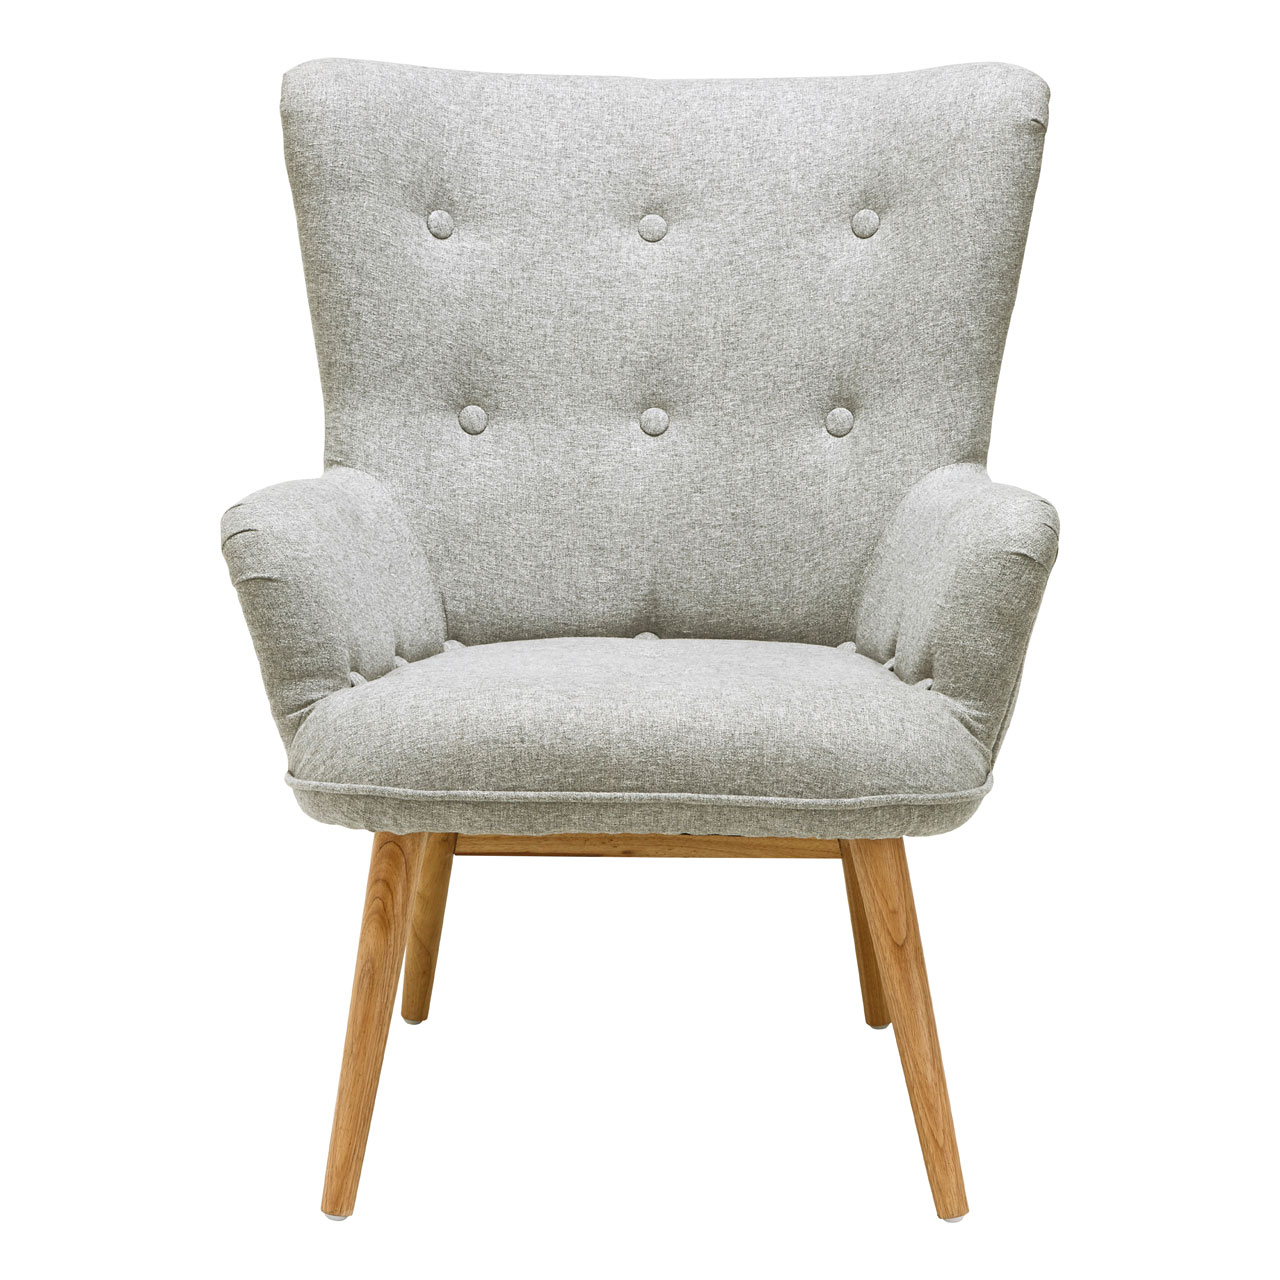 Details About Bergen Armchair Grey Polyester Natural Wood Legs Sofa Lounge  Chair Furniture In Leia Polyester Armchairs (View 14 of 15)